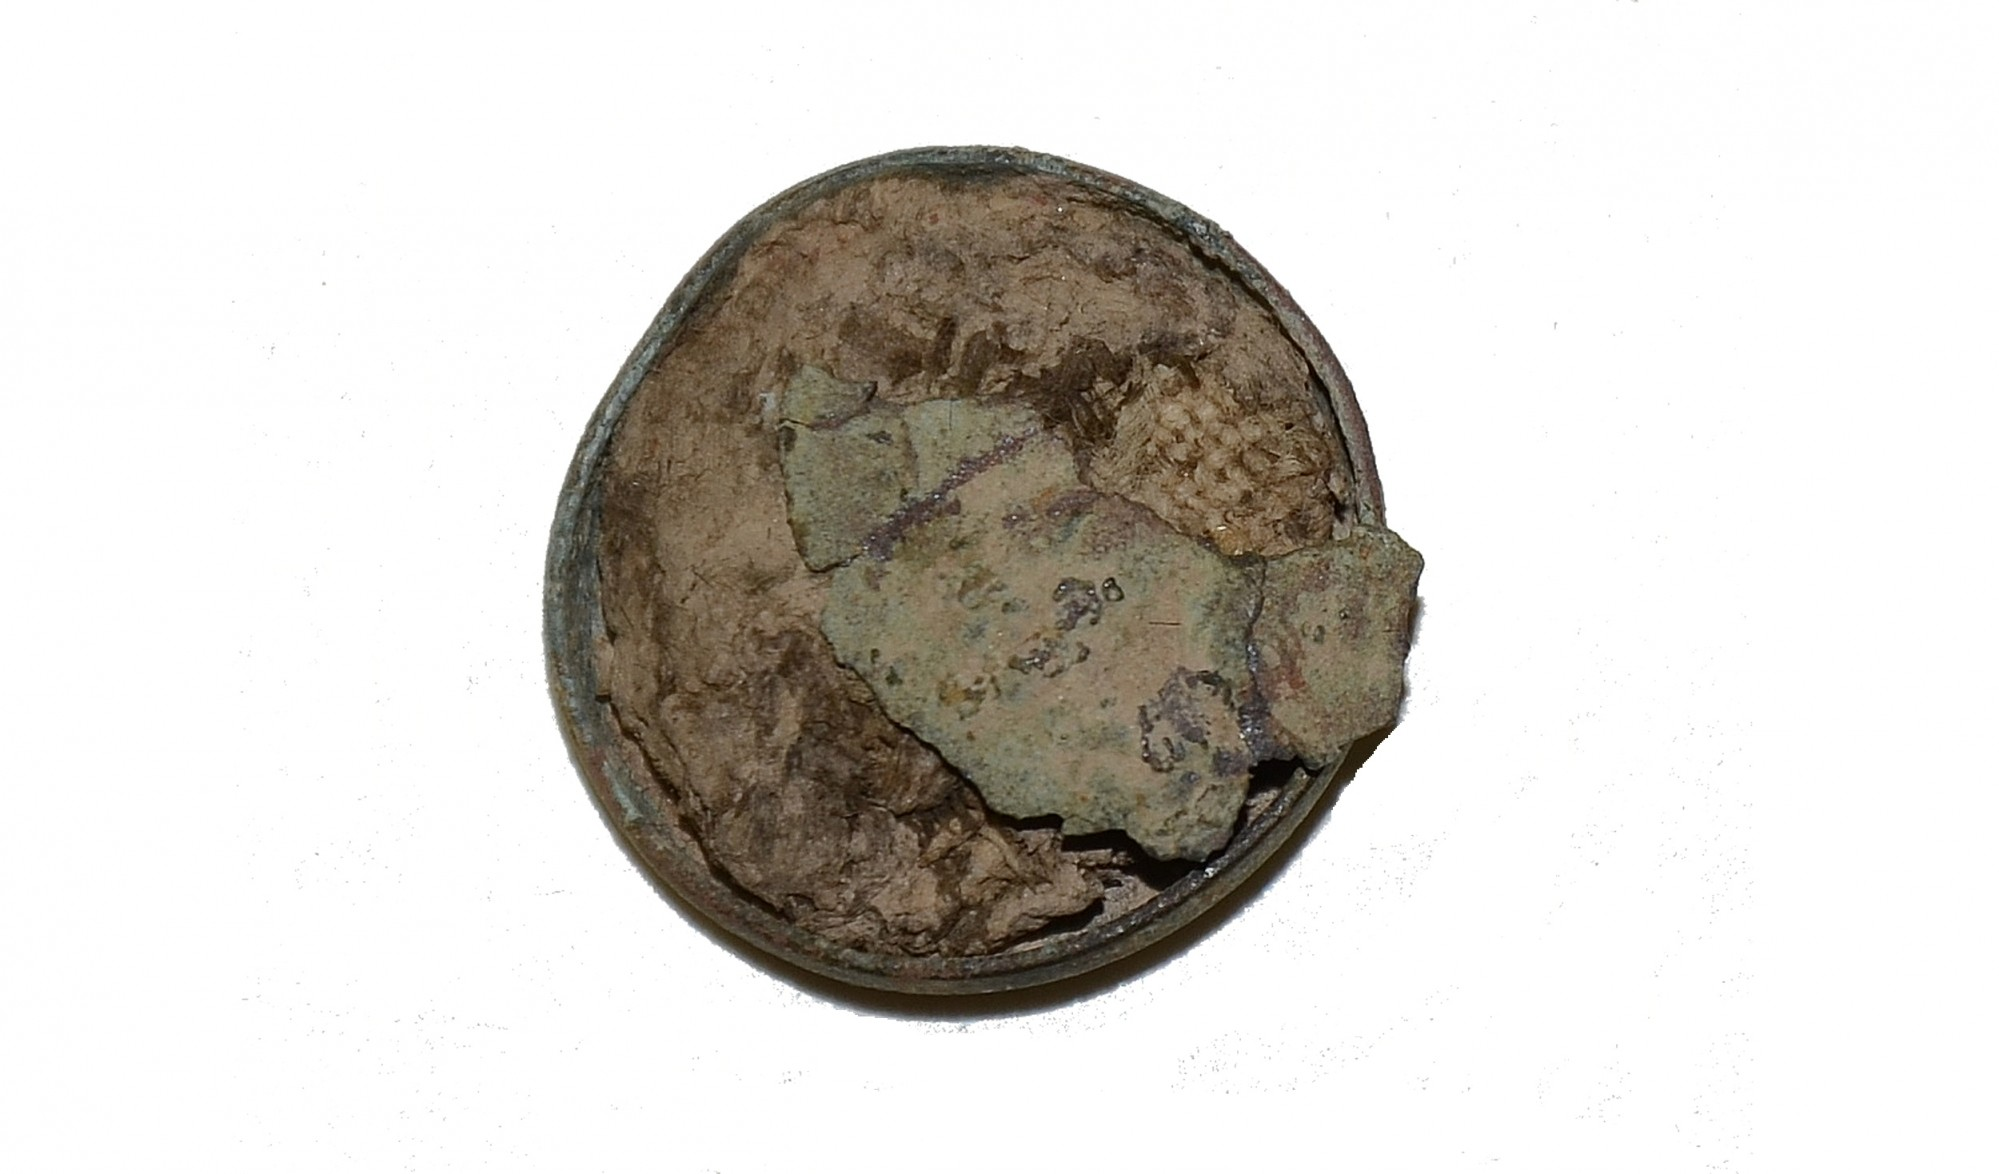 BUTTON SHELL FILLED WITH BUTTERNUT CLOTH FRAGMENTS